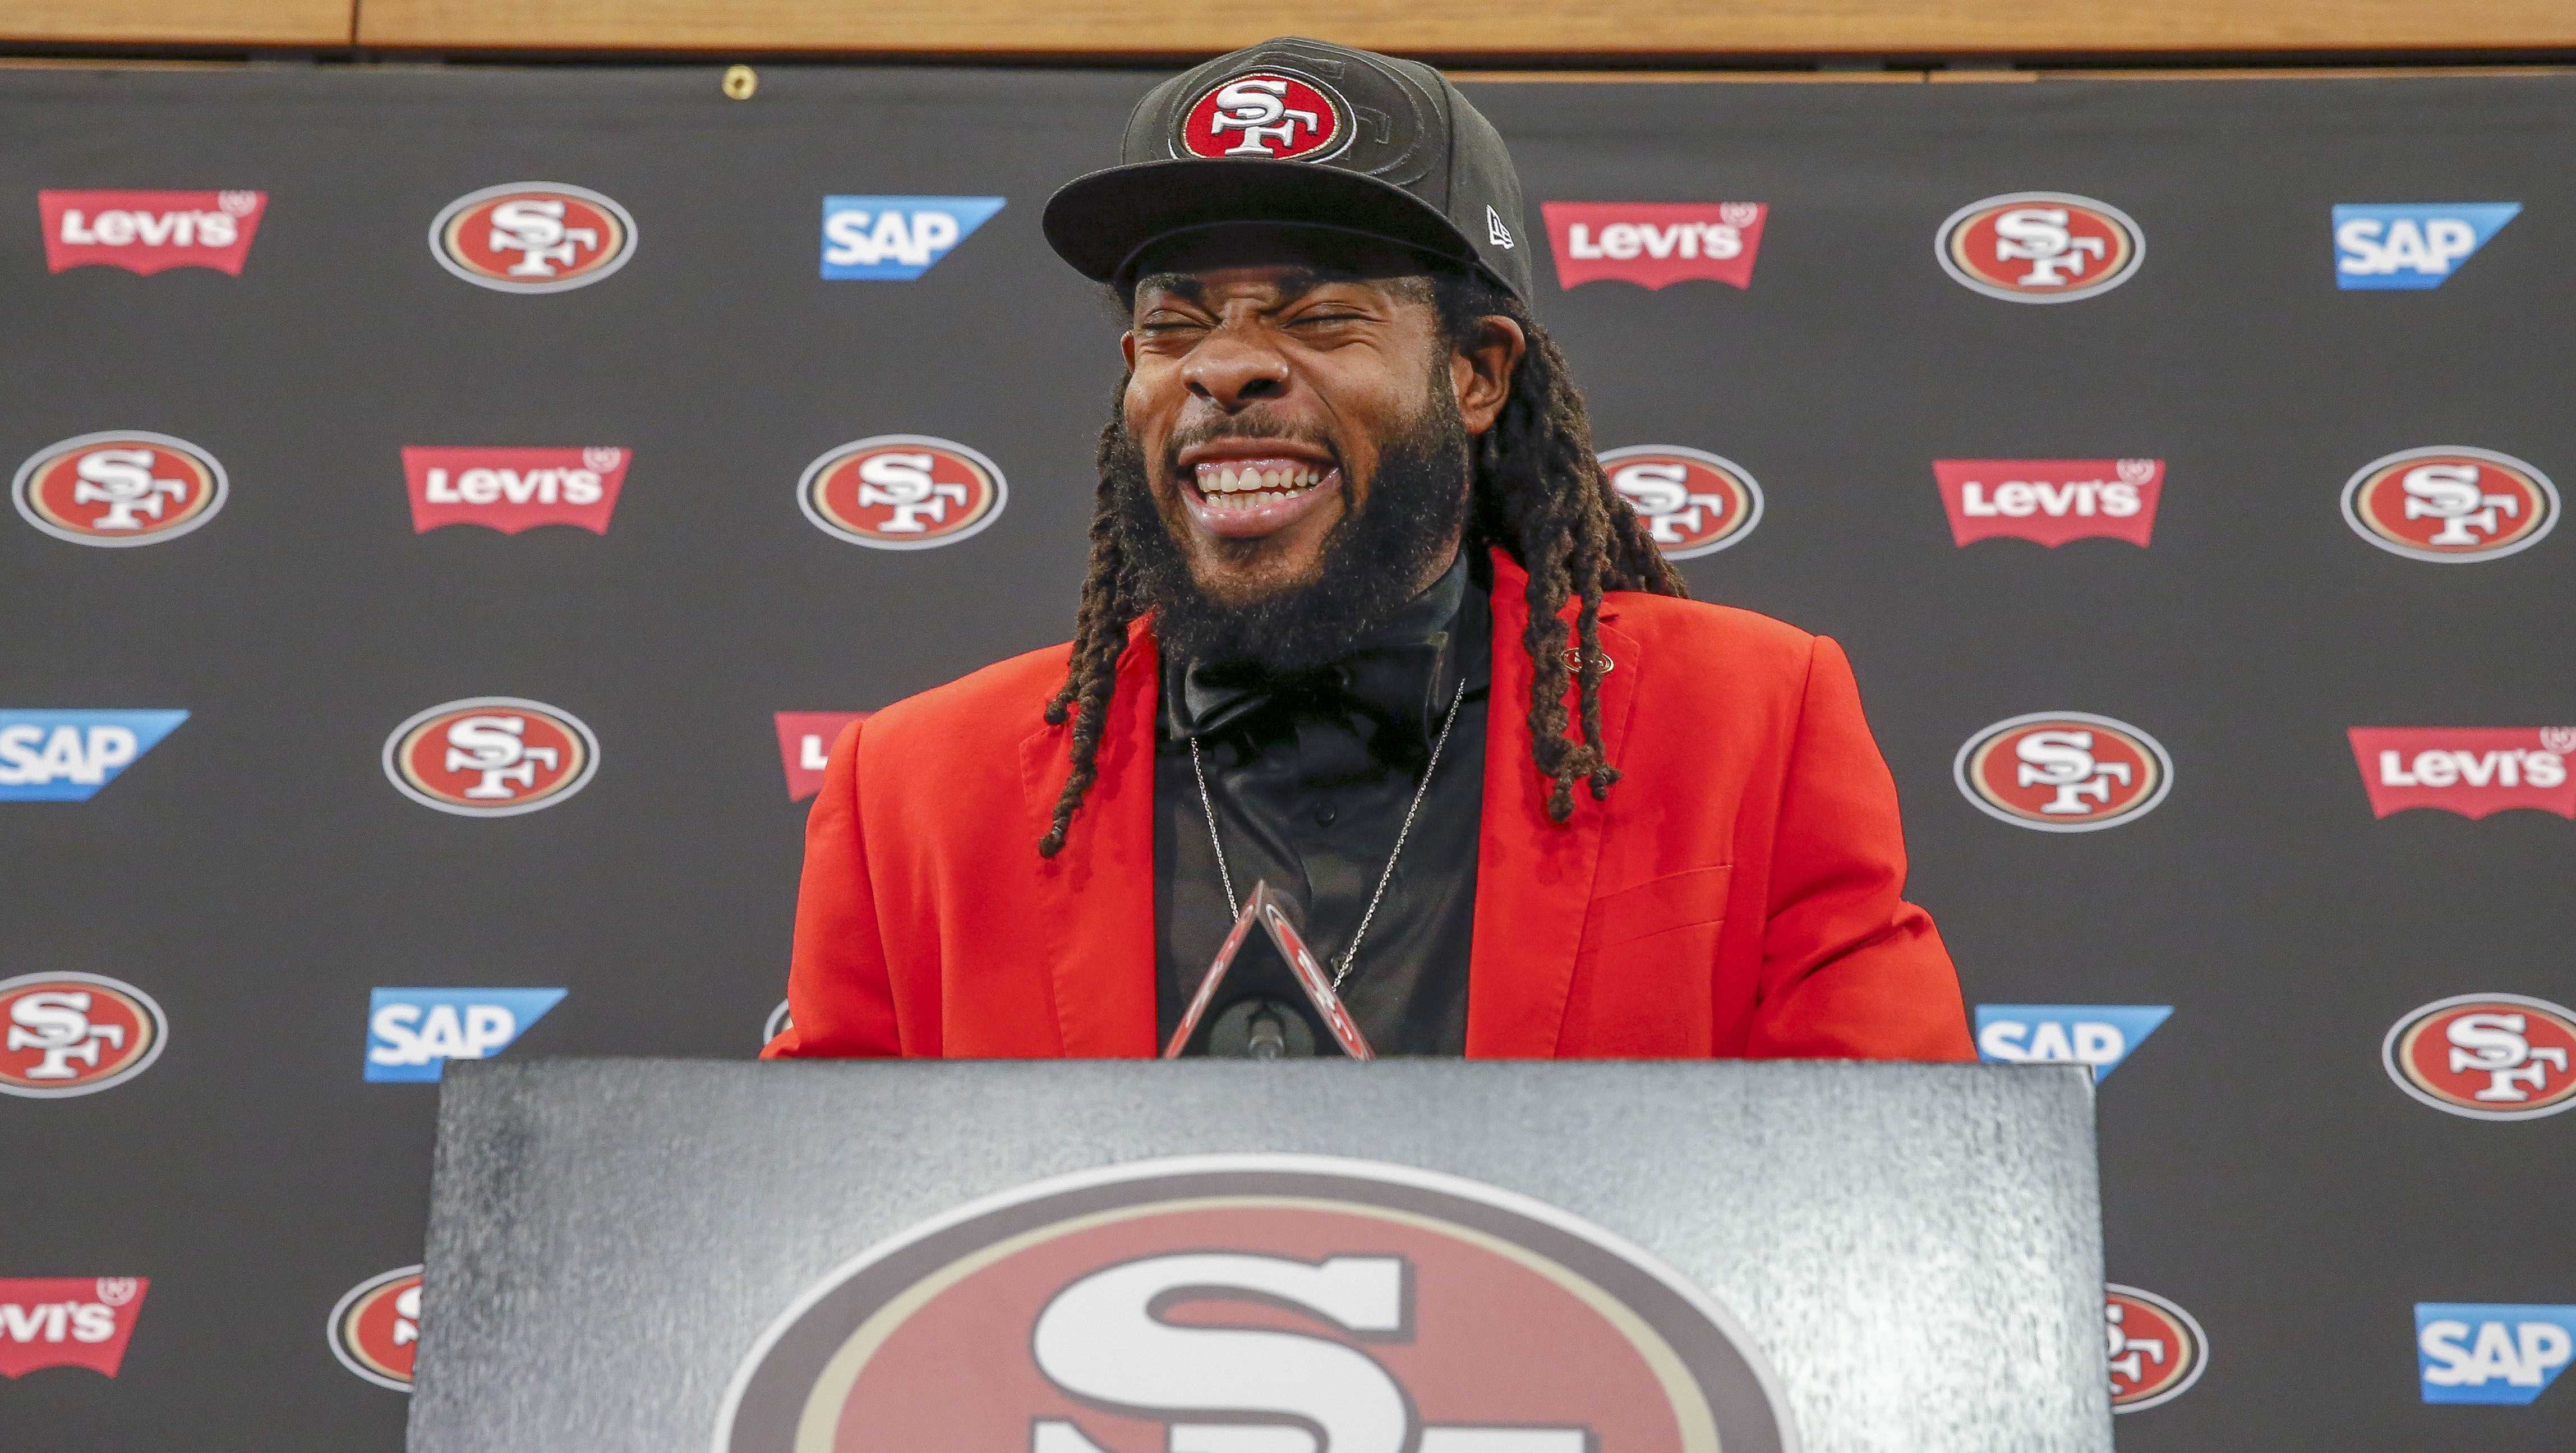 San Francisco 49ers cornerback Richard Sherman laughs as he answers questions during an NFL football news conference in Santa Clara, Calif., Tuesday, March 20, 2018.